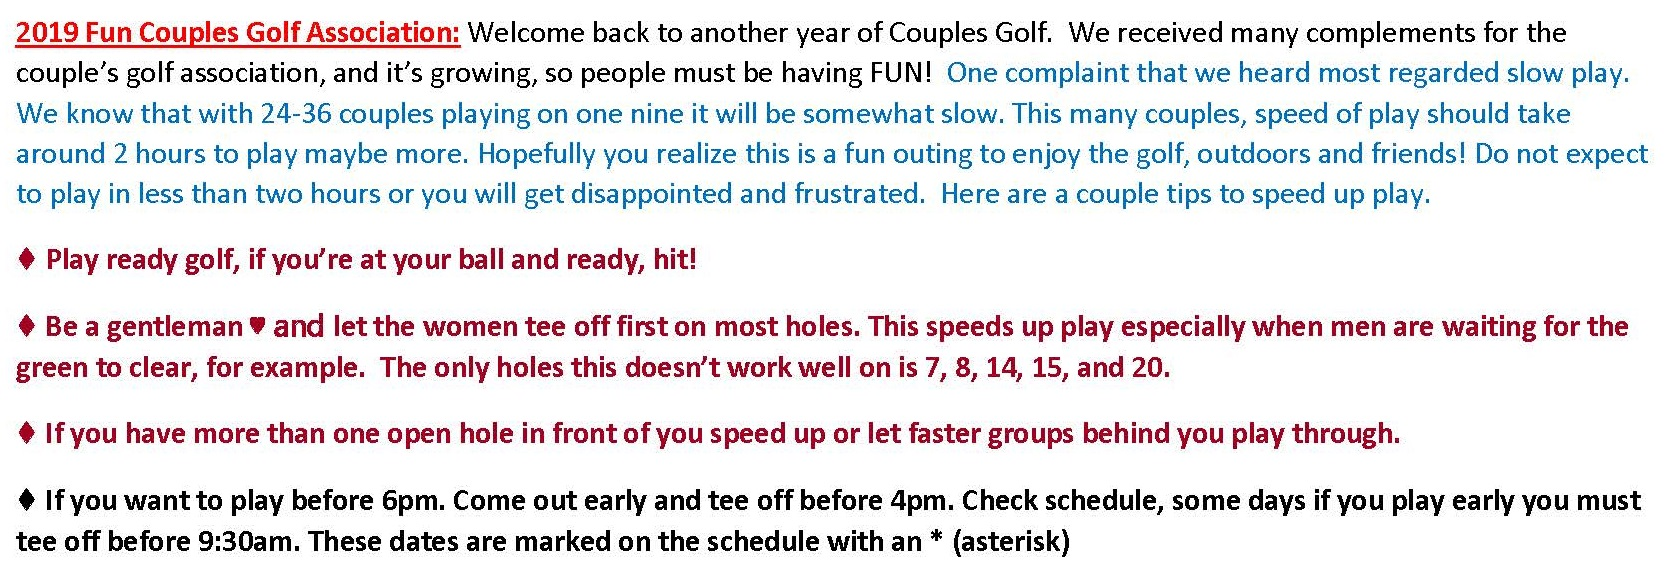 2019 Fun Couples Golf Association Speed up Play Slip